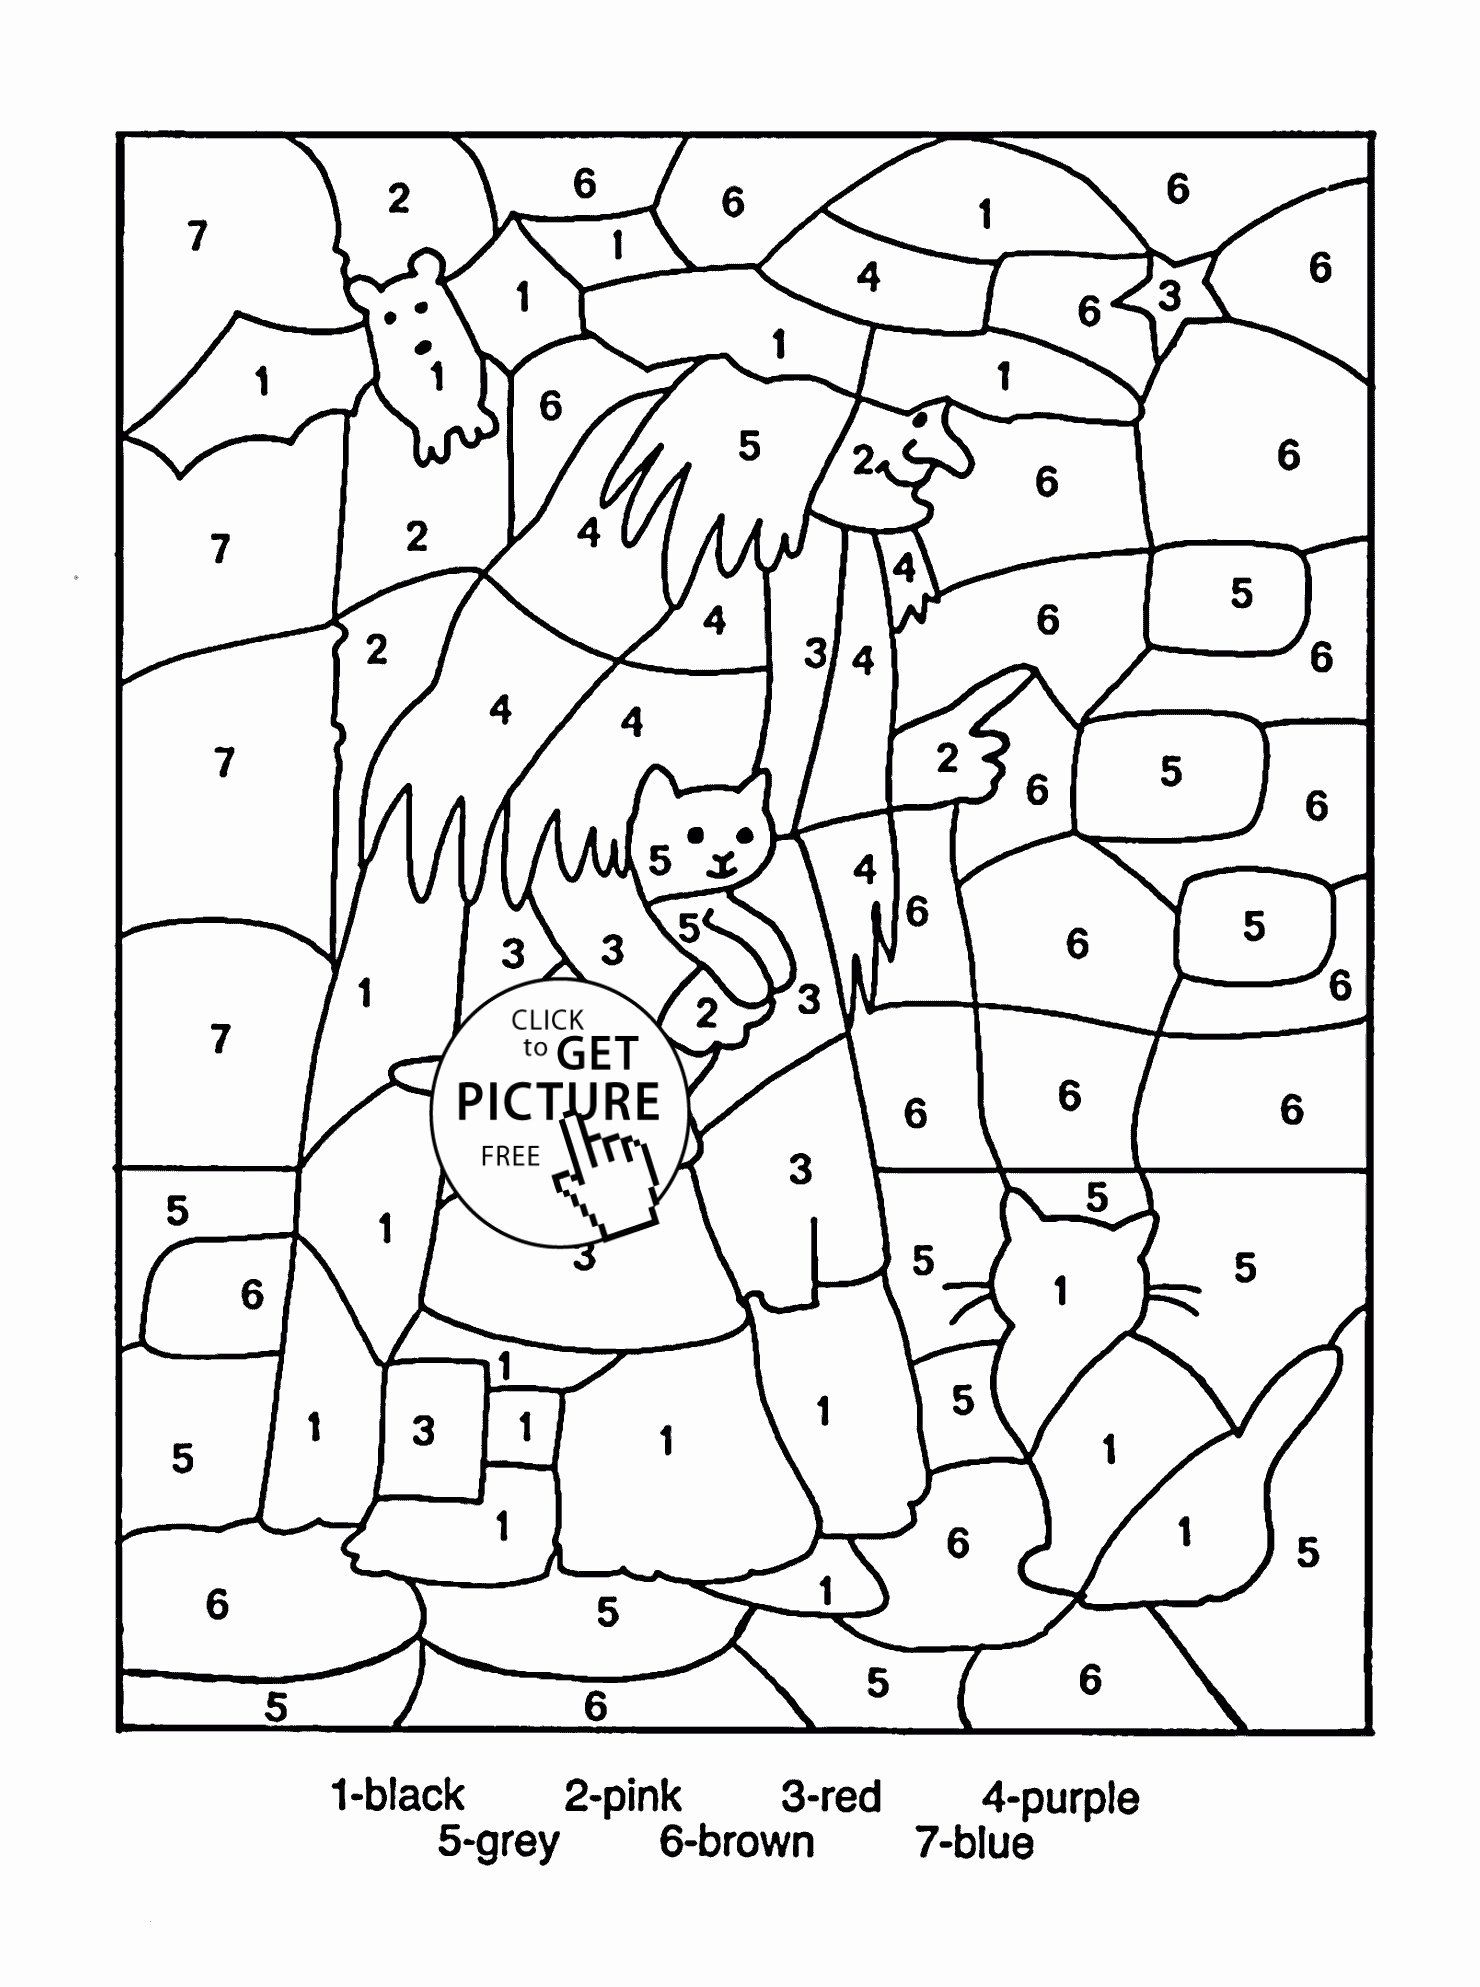 Coloring Pages 4th Grade Awesome 5th Grade Math Coloring Pages Lovely Division Worksheets 4th Matriz [ 1987 x 1480 Pixel ]